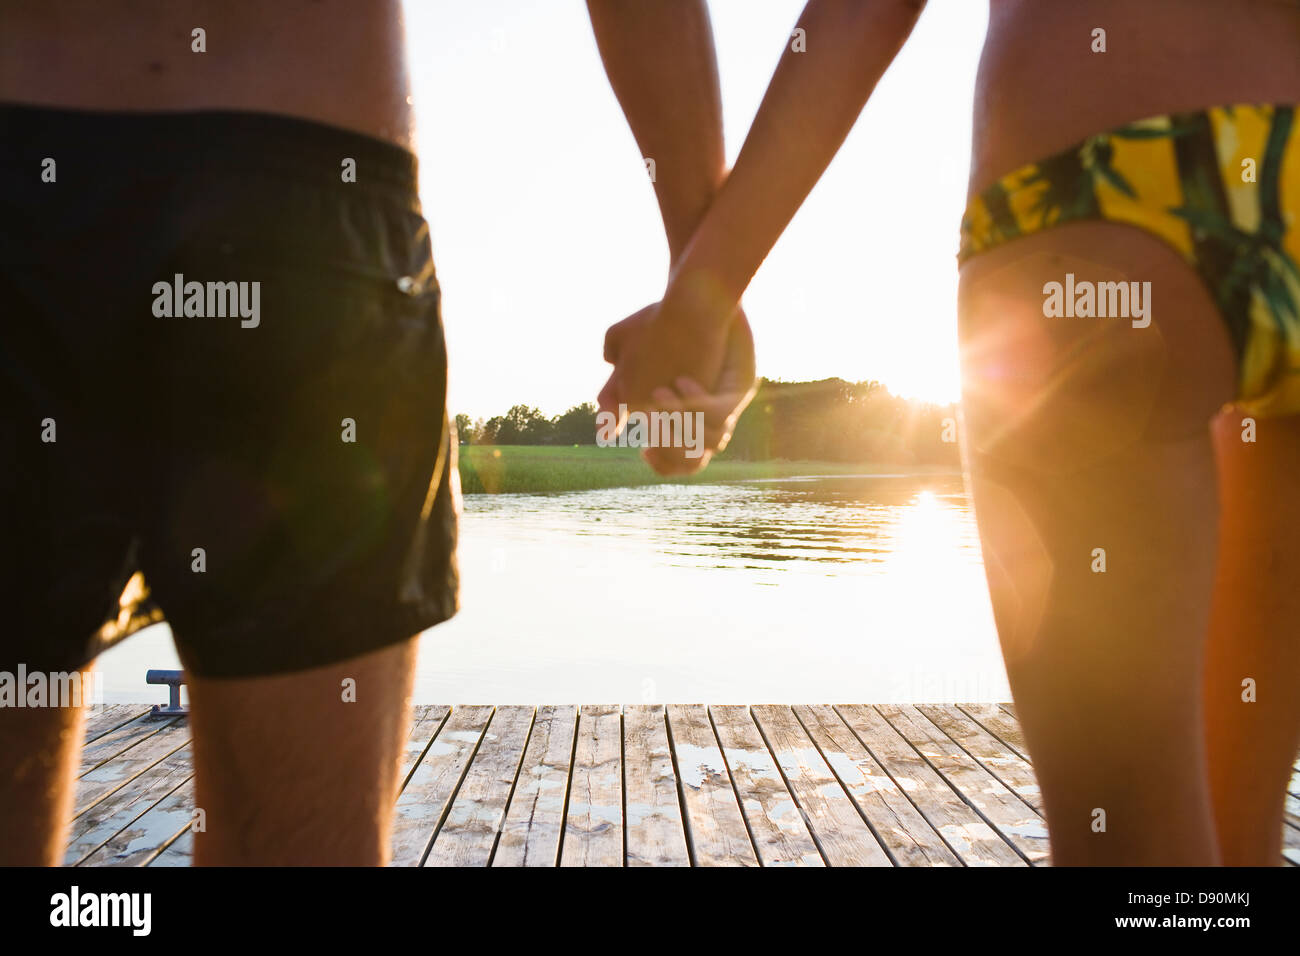 Couple holding hands on jetty - Stock Image